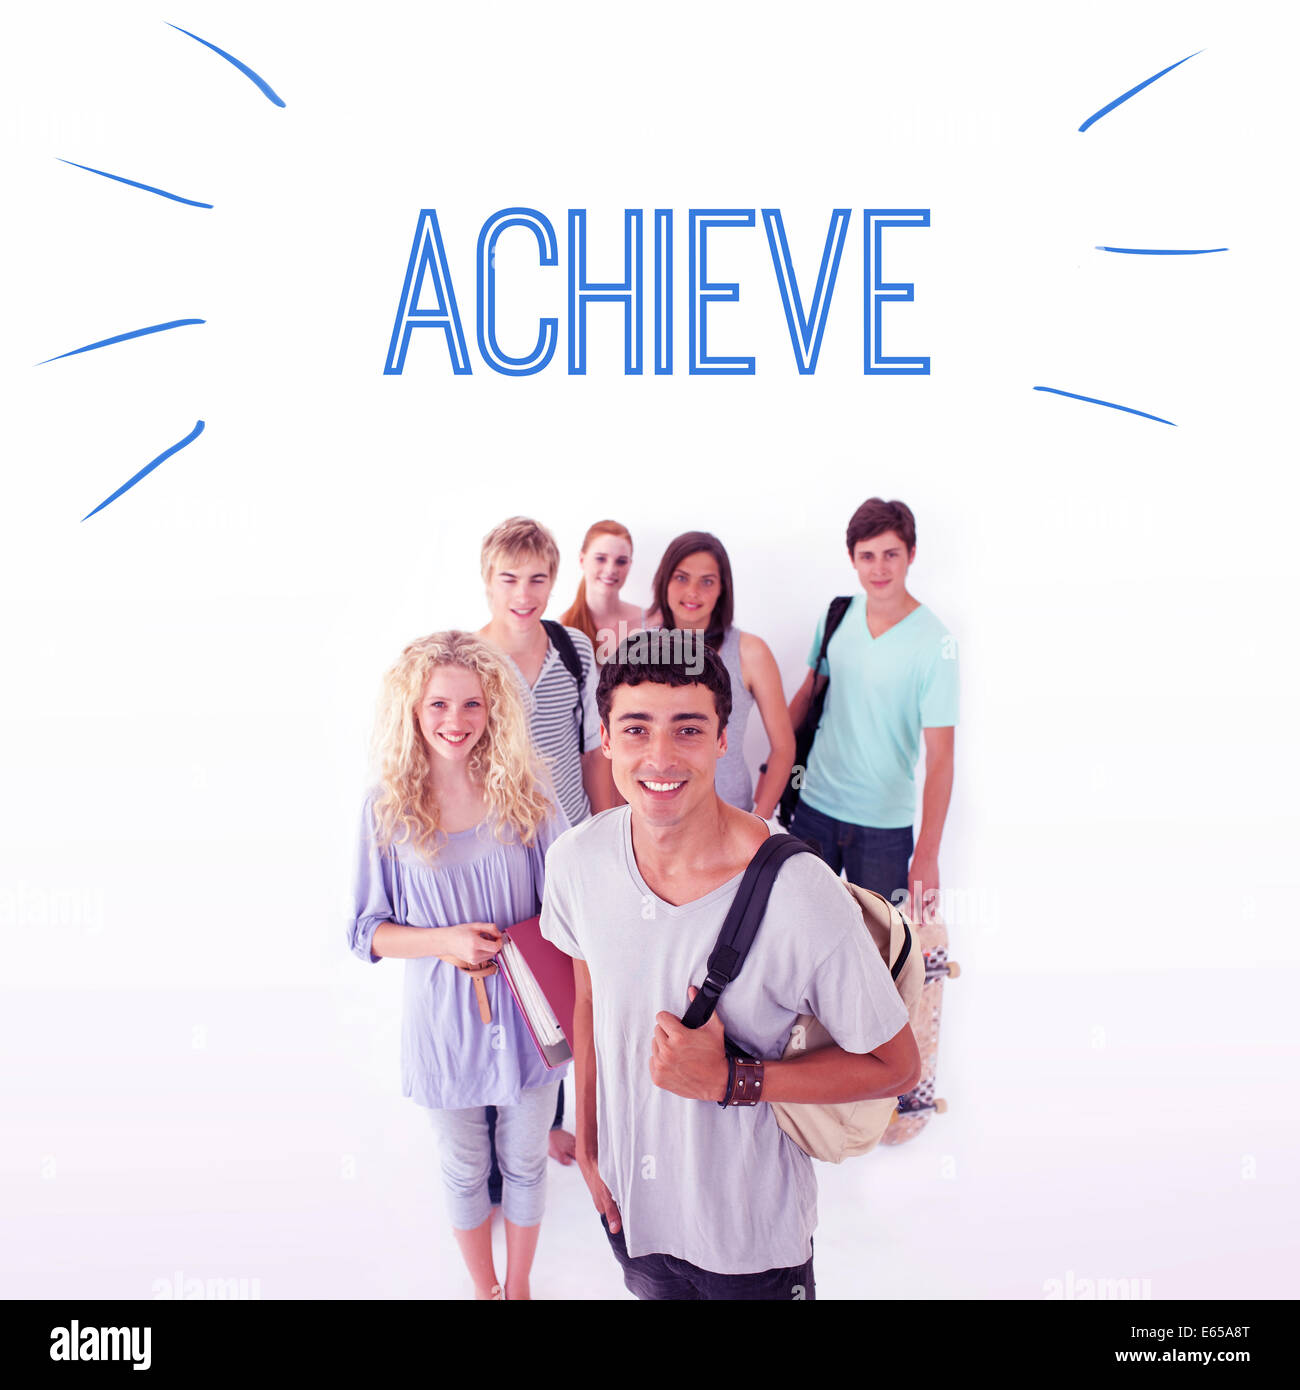 Achieve against smiling students - Stock Image